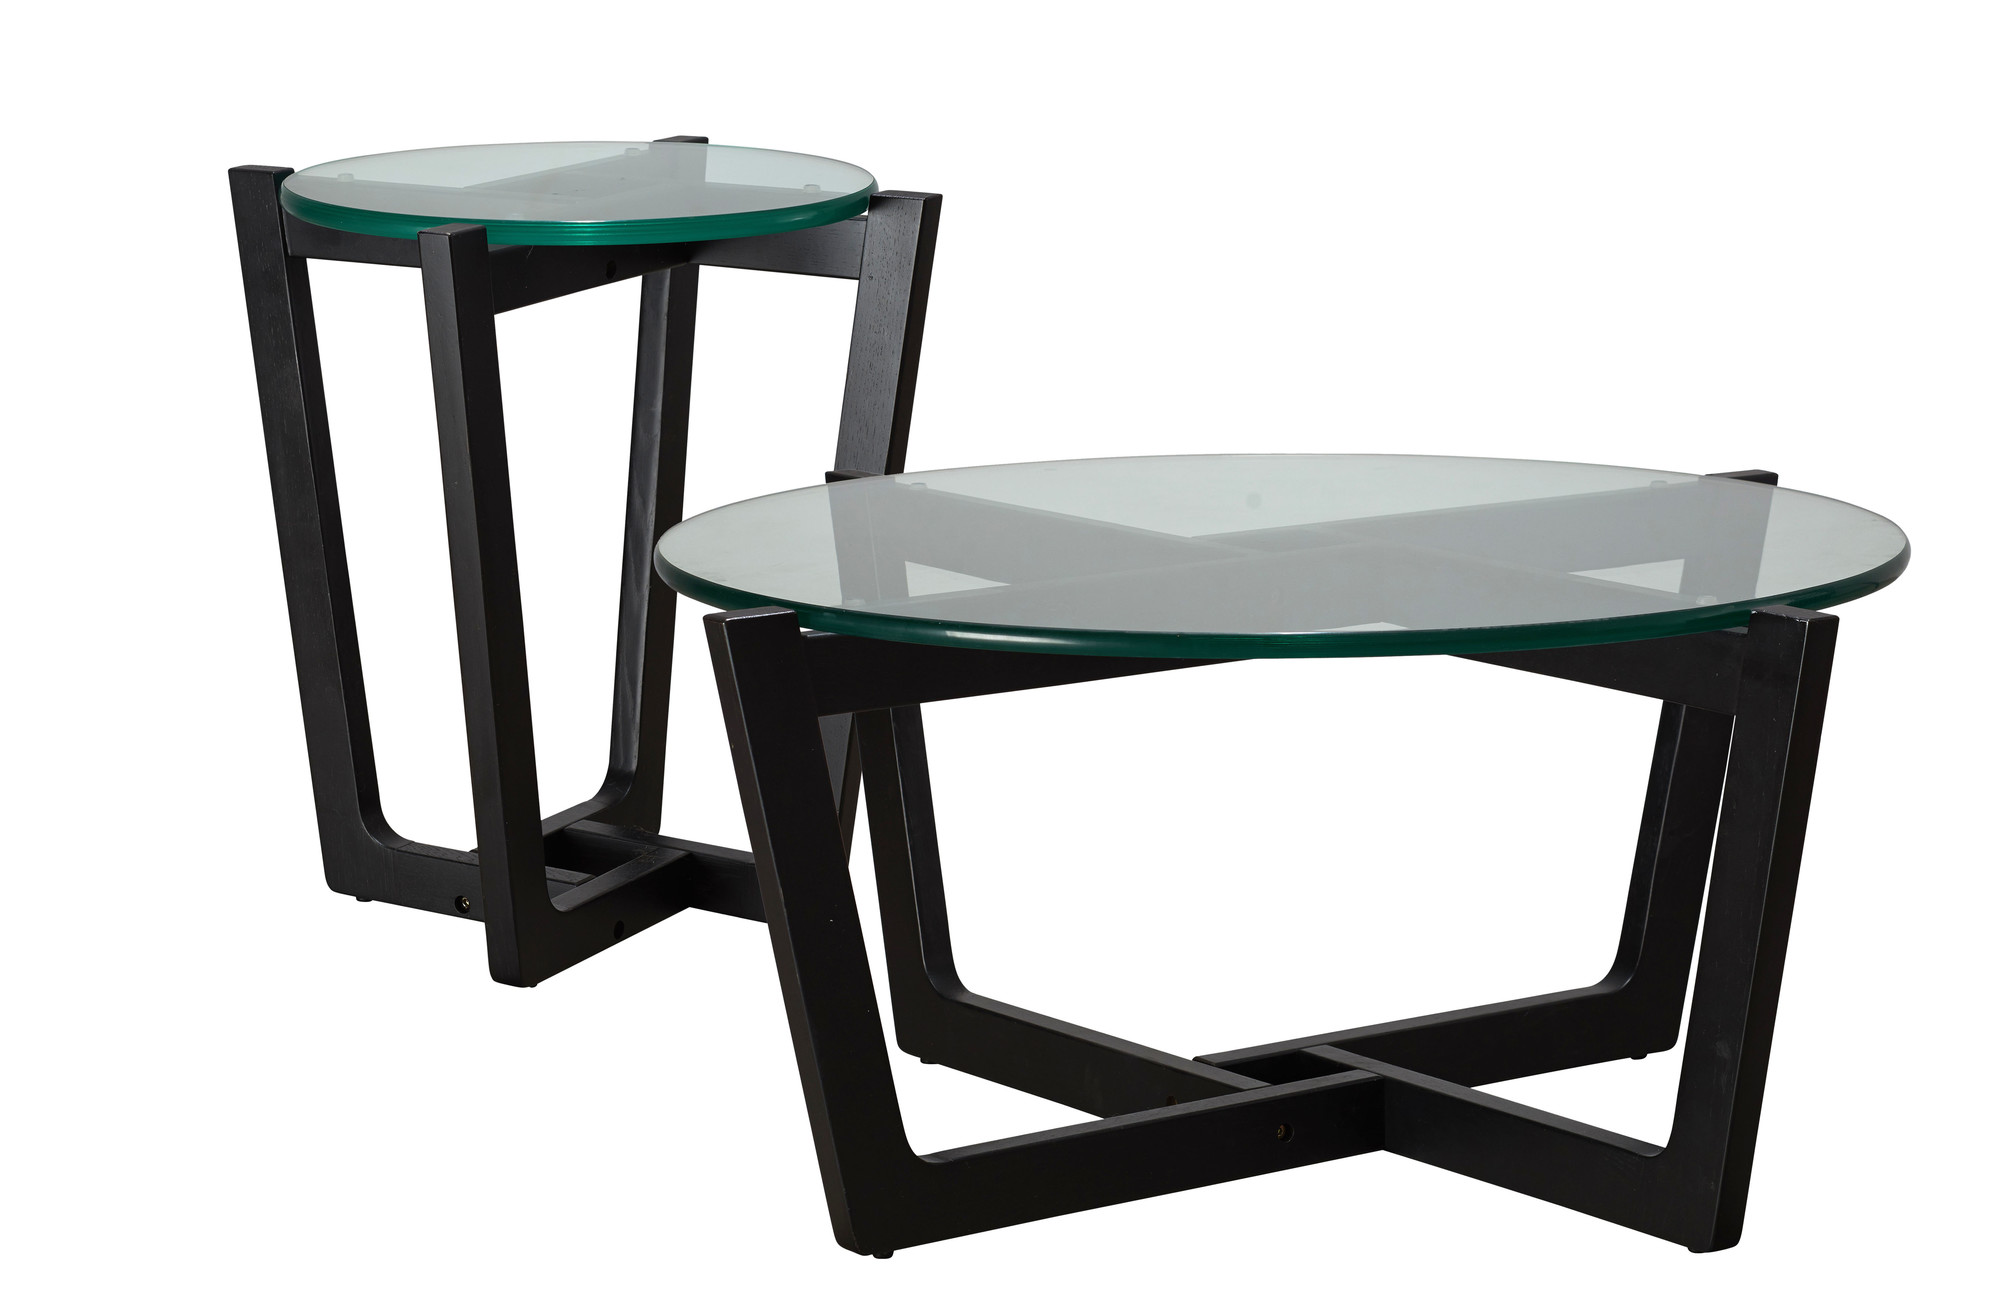 New monterey black leg coffee side table set ebay for Coffee tables ebay australia